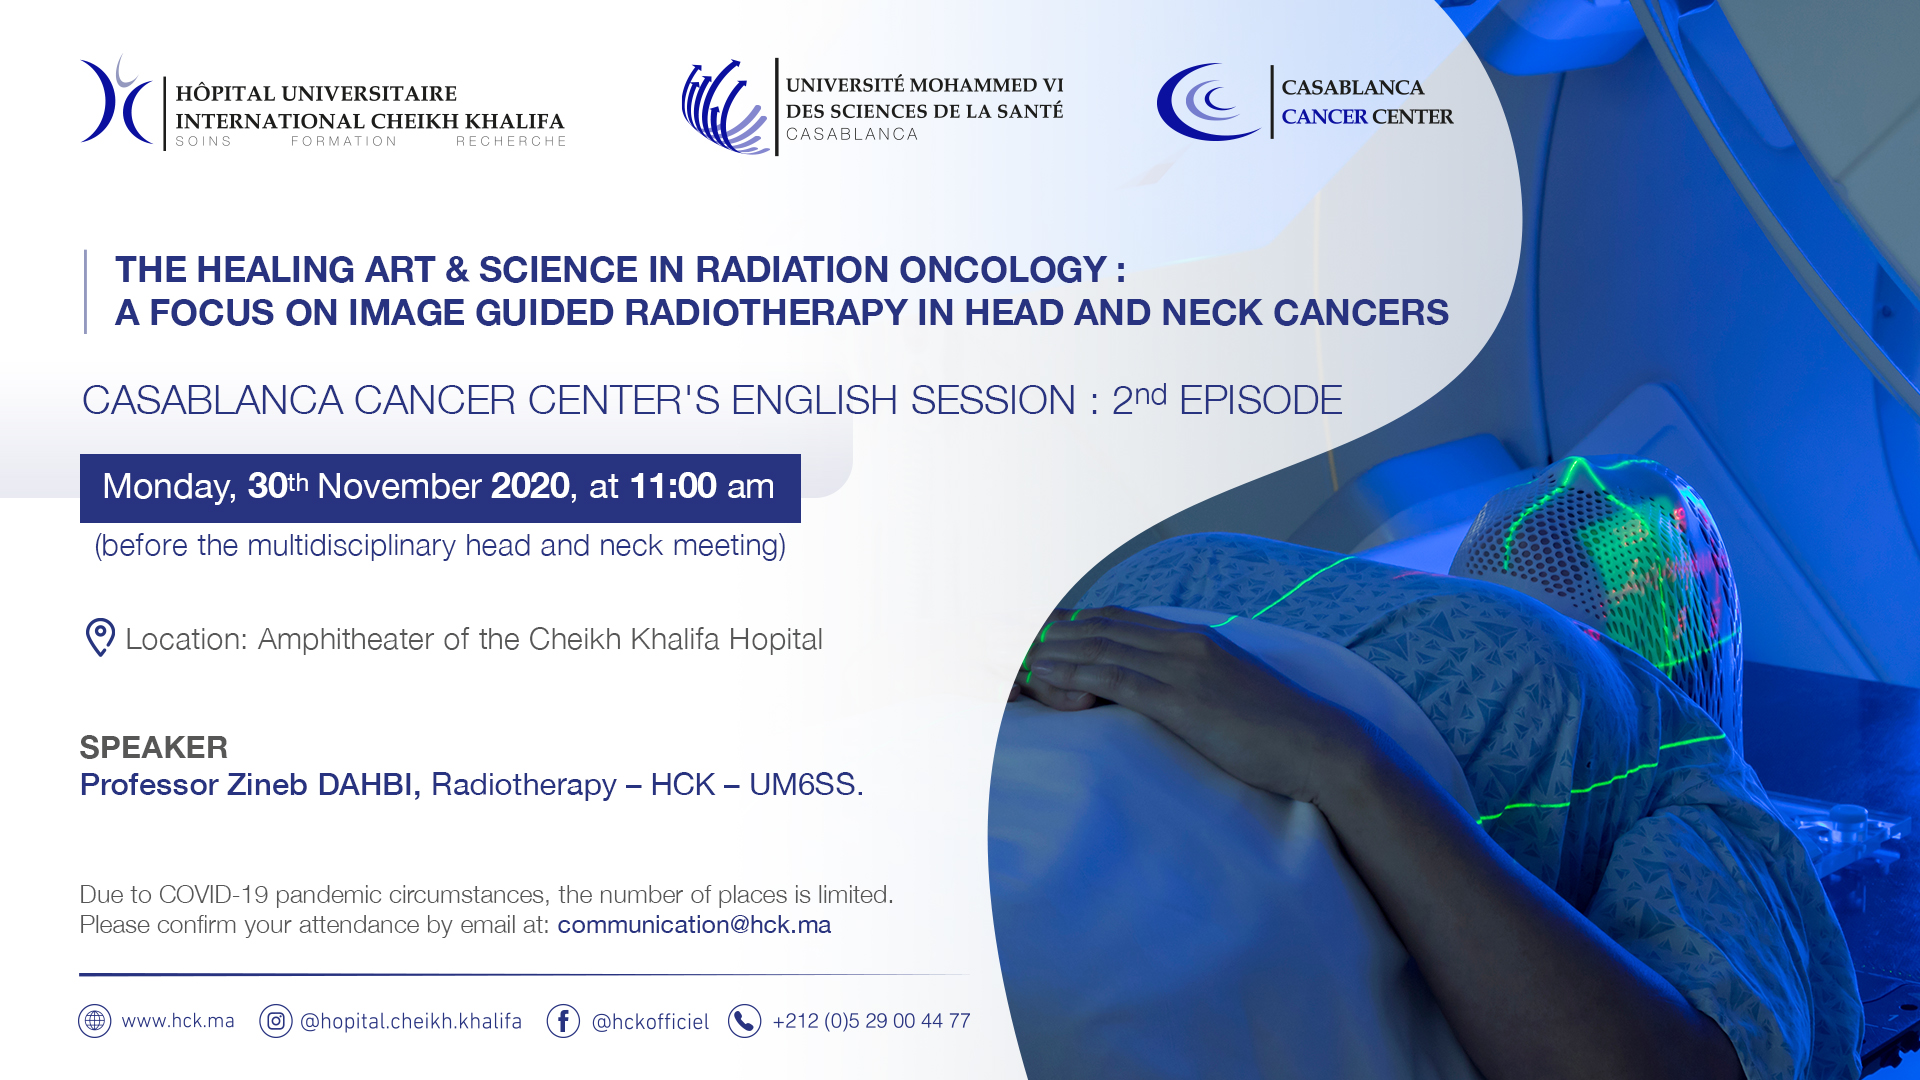 CASABLANCA CANCER CENTER'S ENGLISH SESSION - THE HEALING ART & SCIENCE IN RADIATION ONCOLOGY: A FOCUS ON IMAGE GUIDED RADIOTHERAPY IN HEAD AND NECK CANCERS